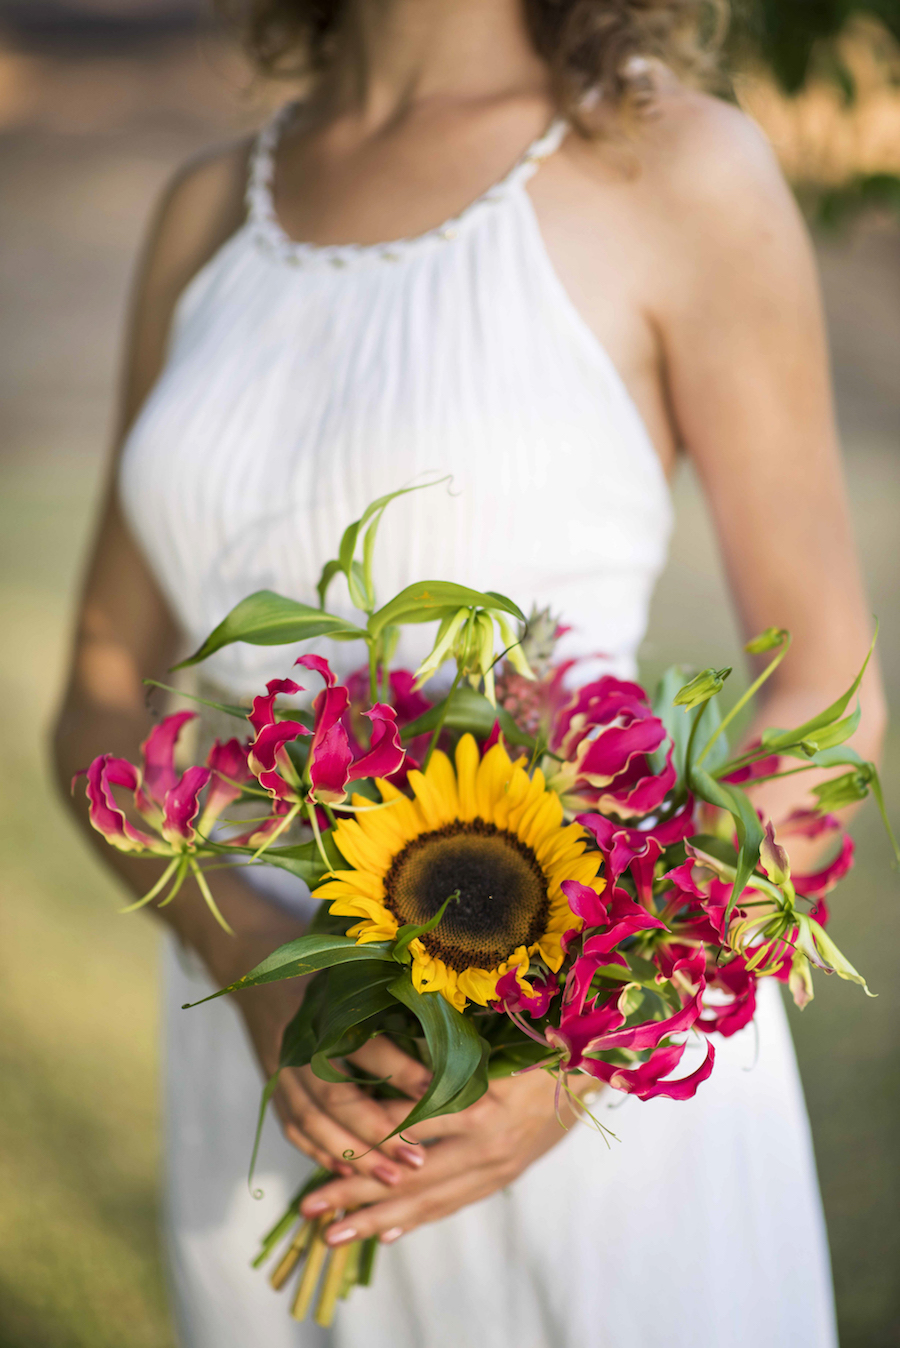 hand tied bouquet of Darwin grown flowers, including gloriosa, sunflowers and ornamental pineapples